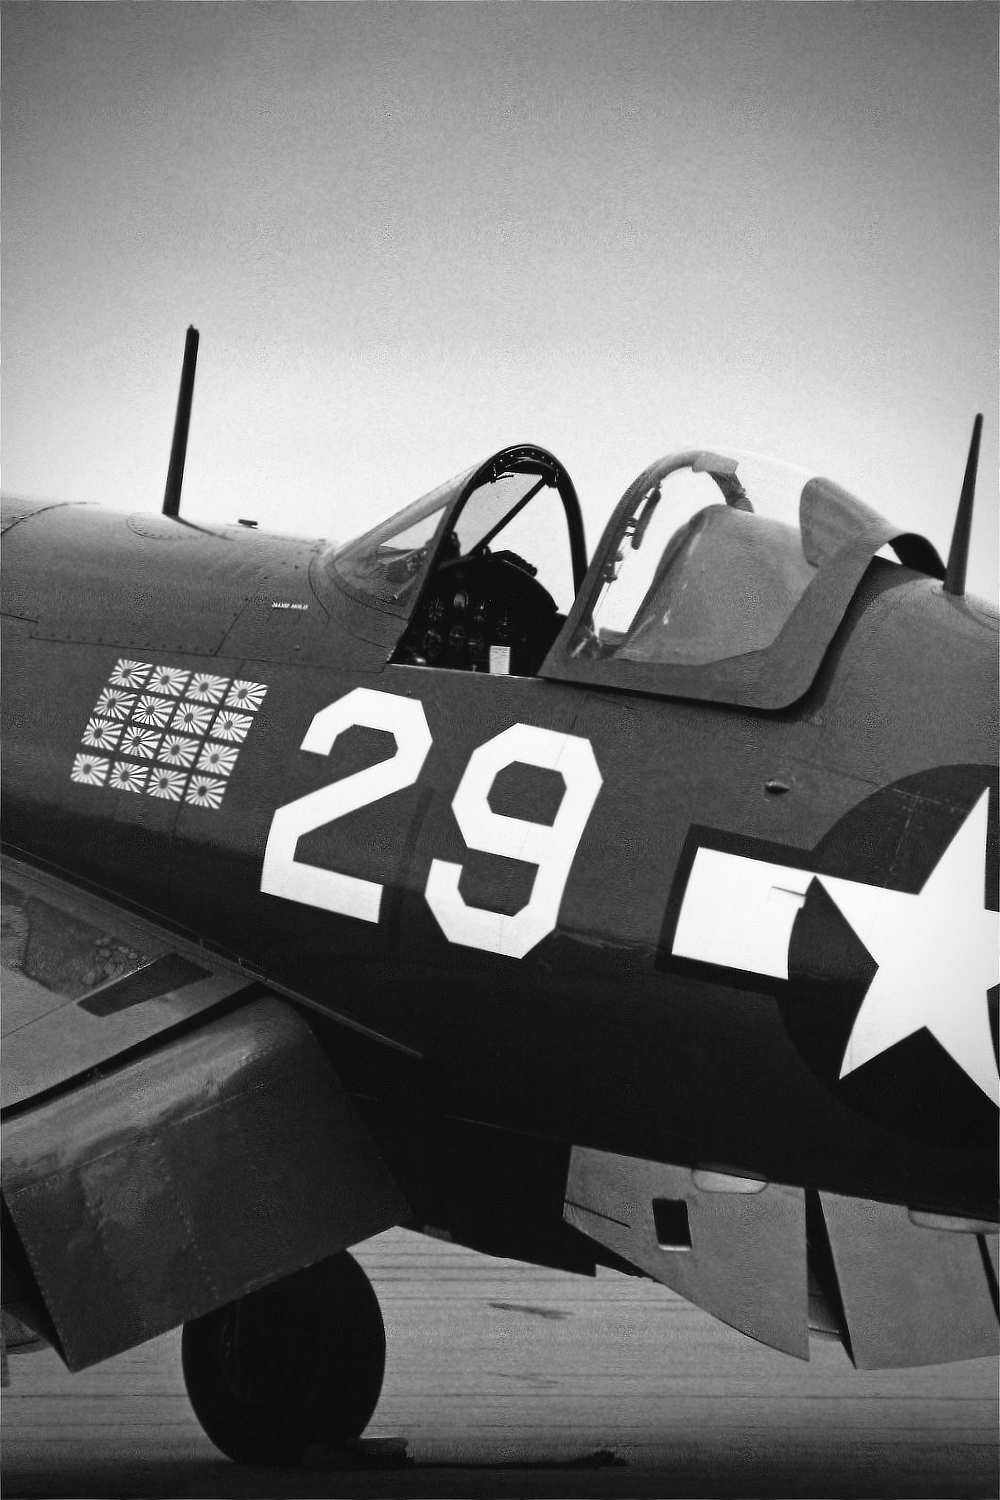 Black and white photo of a Vought F4 Corsair at Duxford